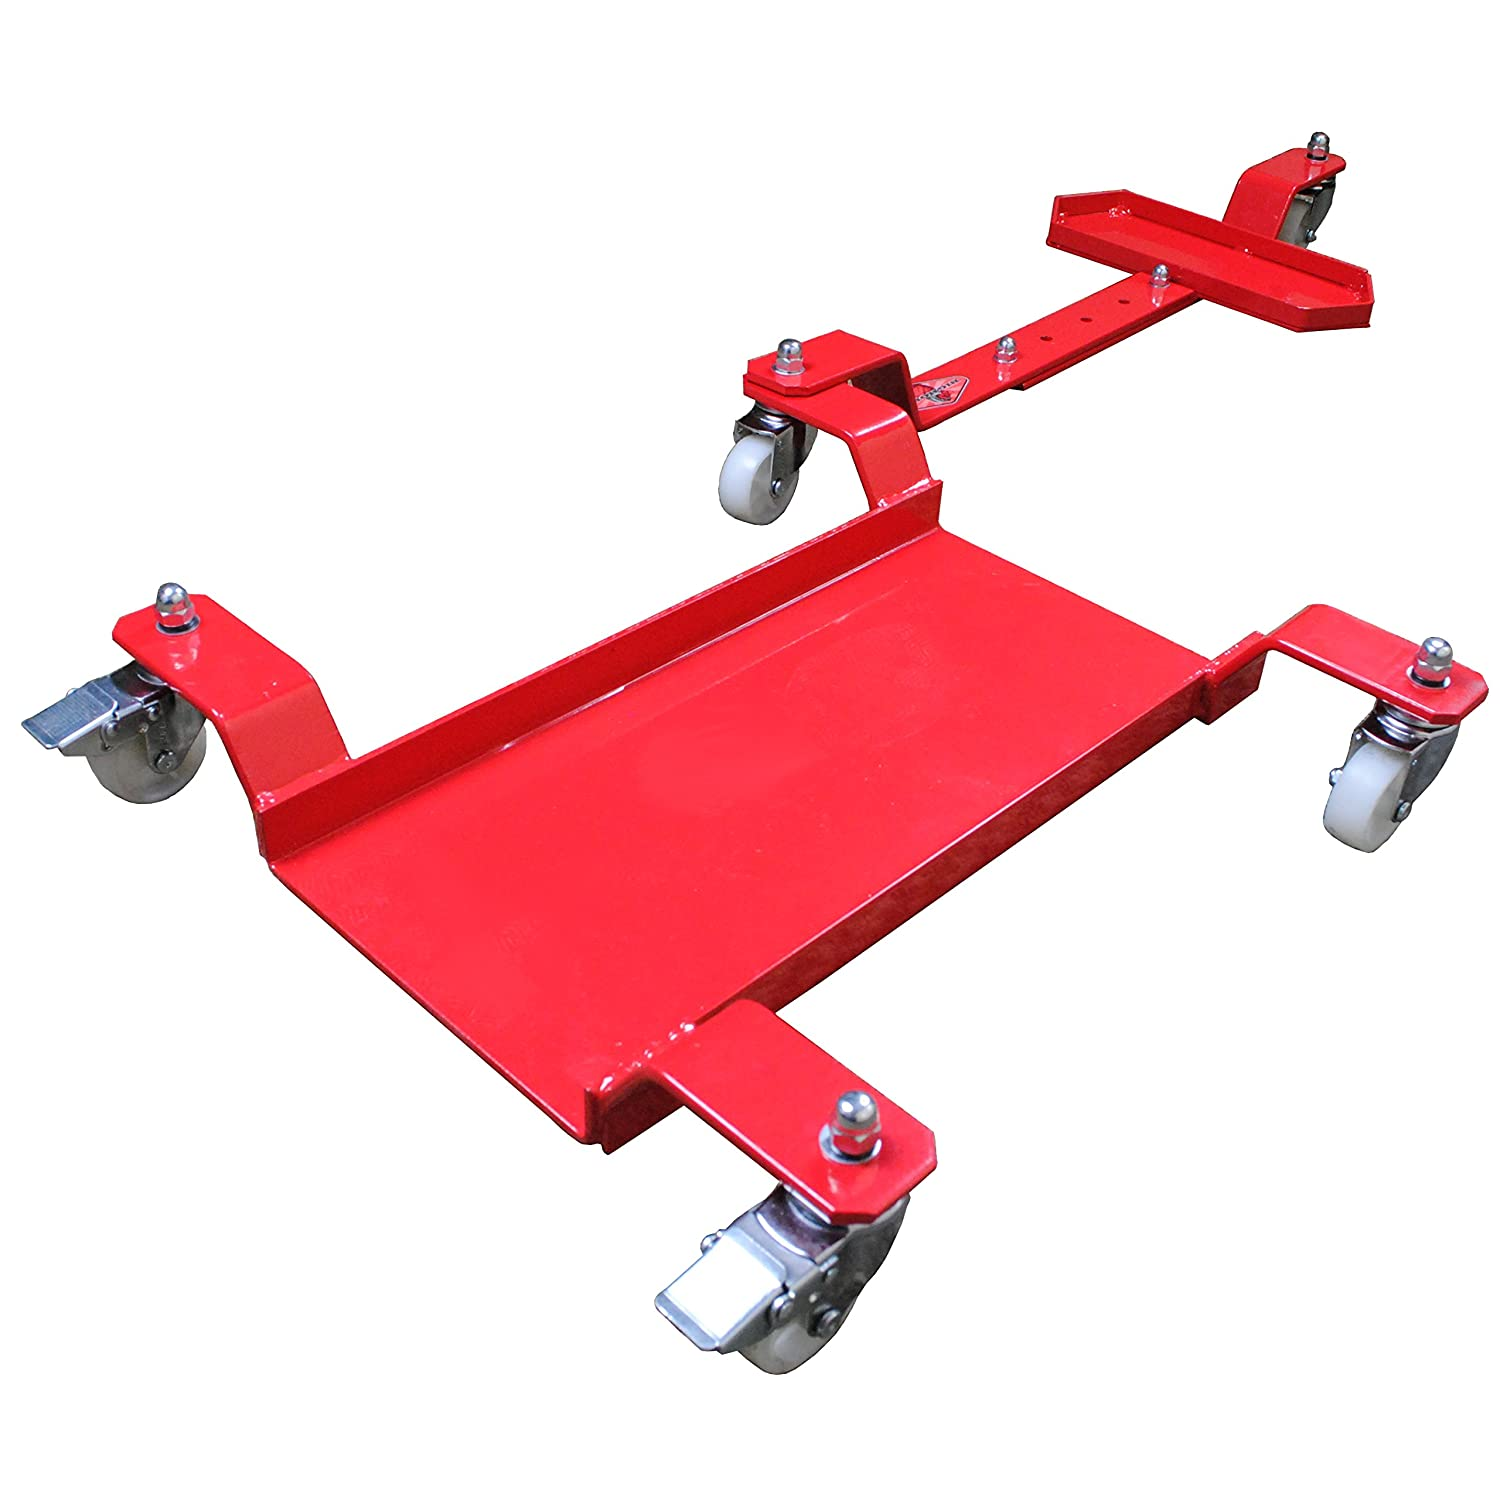 Big Horn Motorcycle Dolly | Generation 2 Low Profile Design | 1250 LBS Capacity | Adjustable For Sports Bikes Or Cruisers MCDBHRR1A